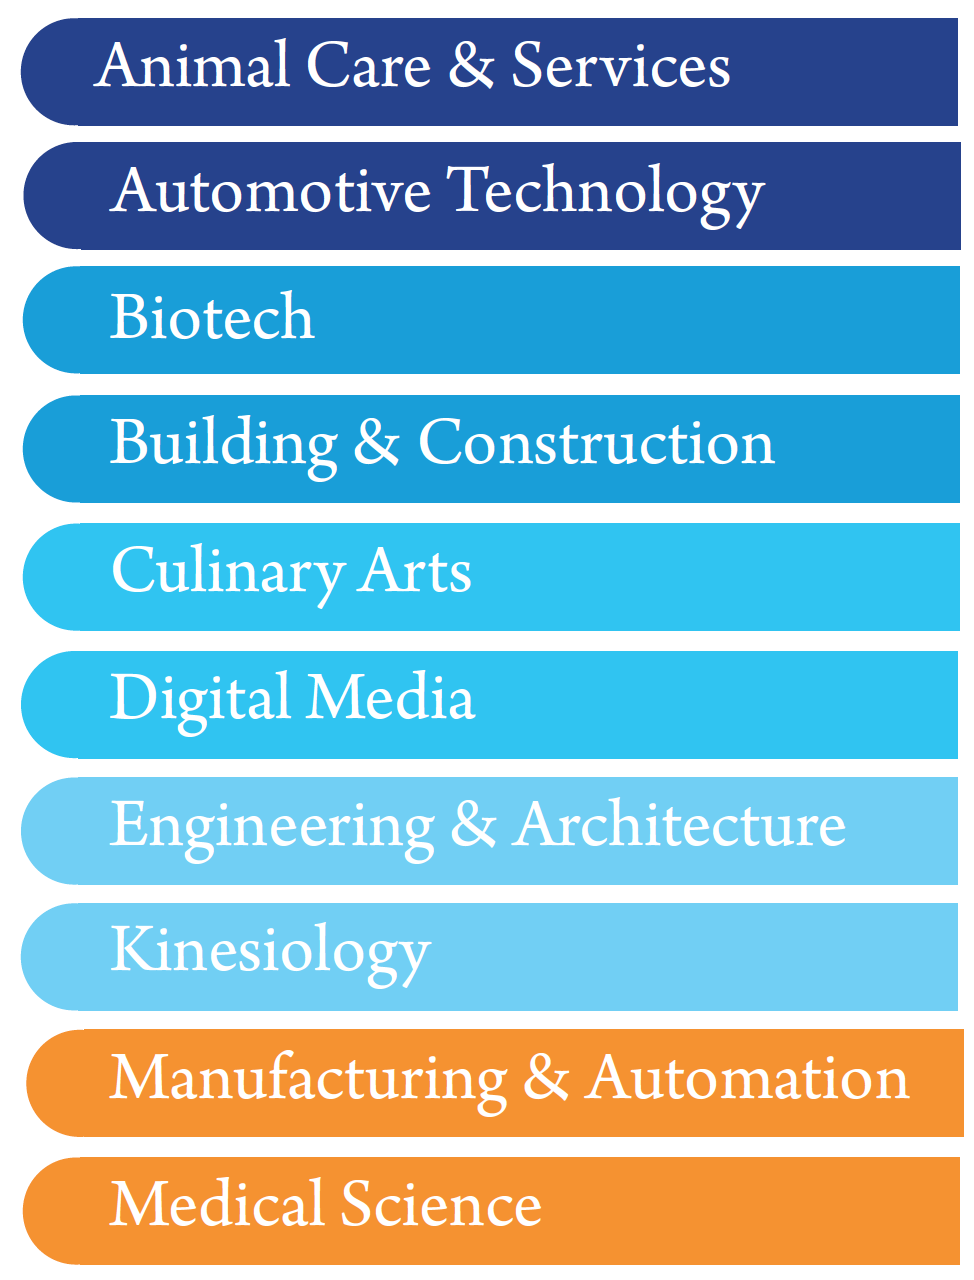 animal care, automotive, biotech, and other career tech course pathways